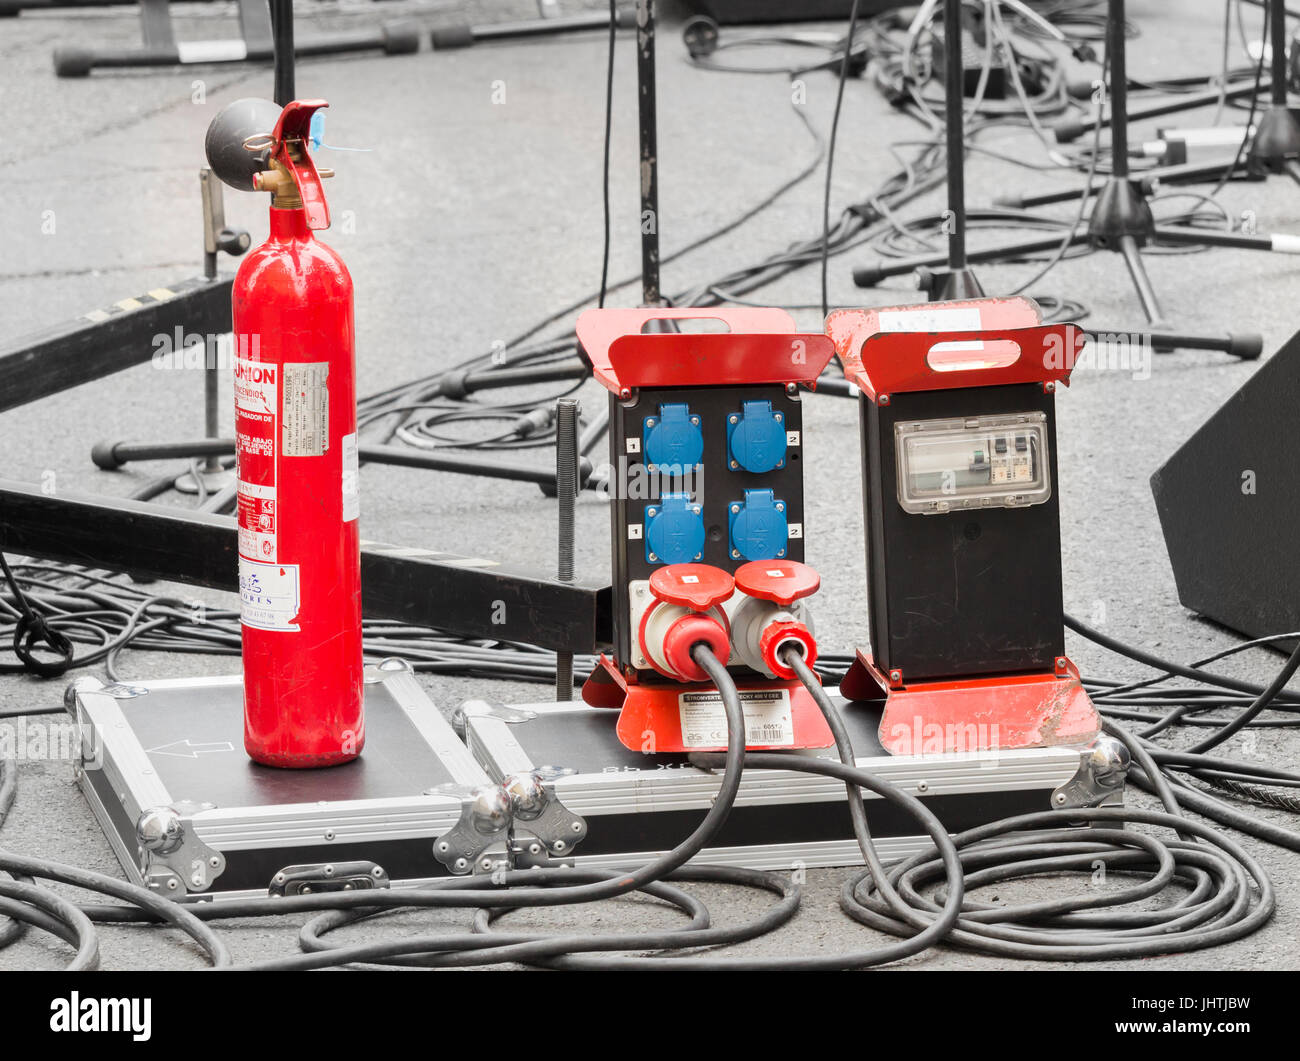 Fire extinguisher on stage at outdoor concert. - Stock Image